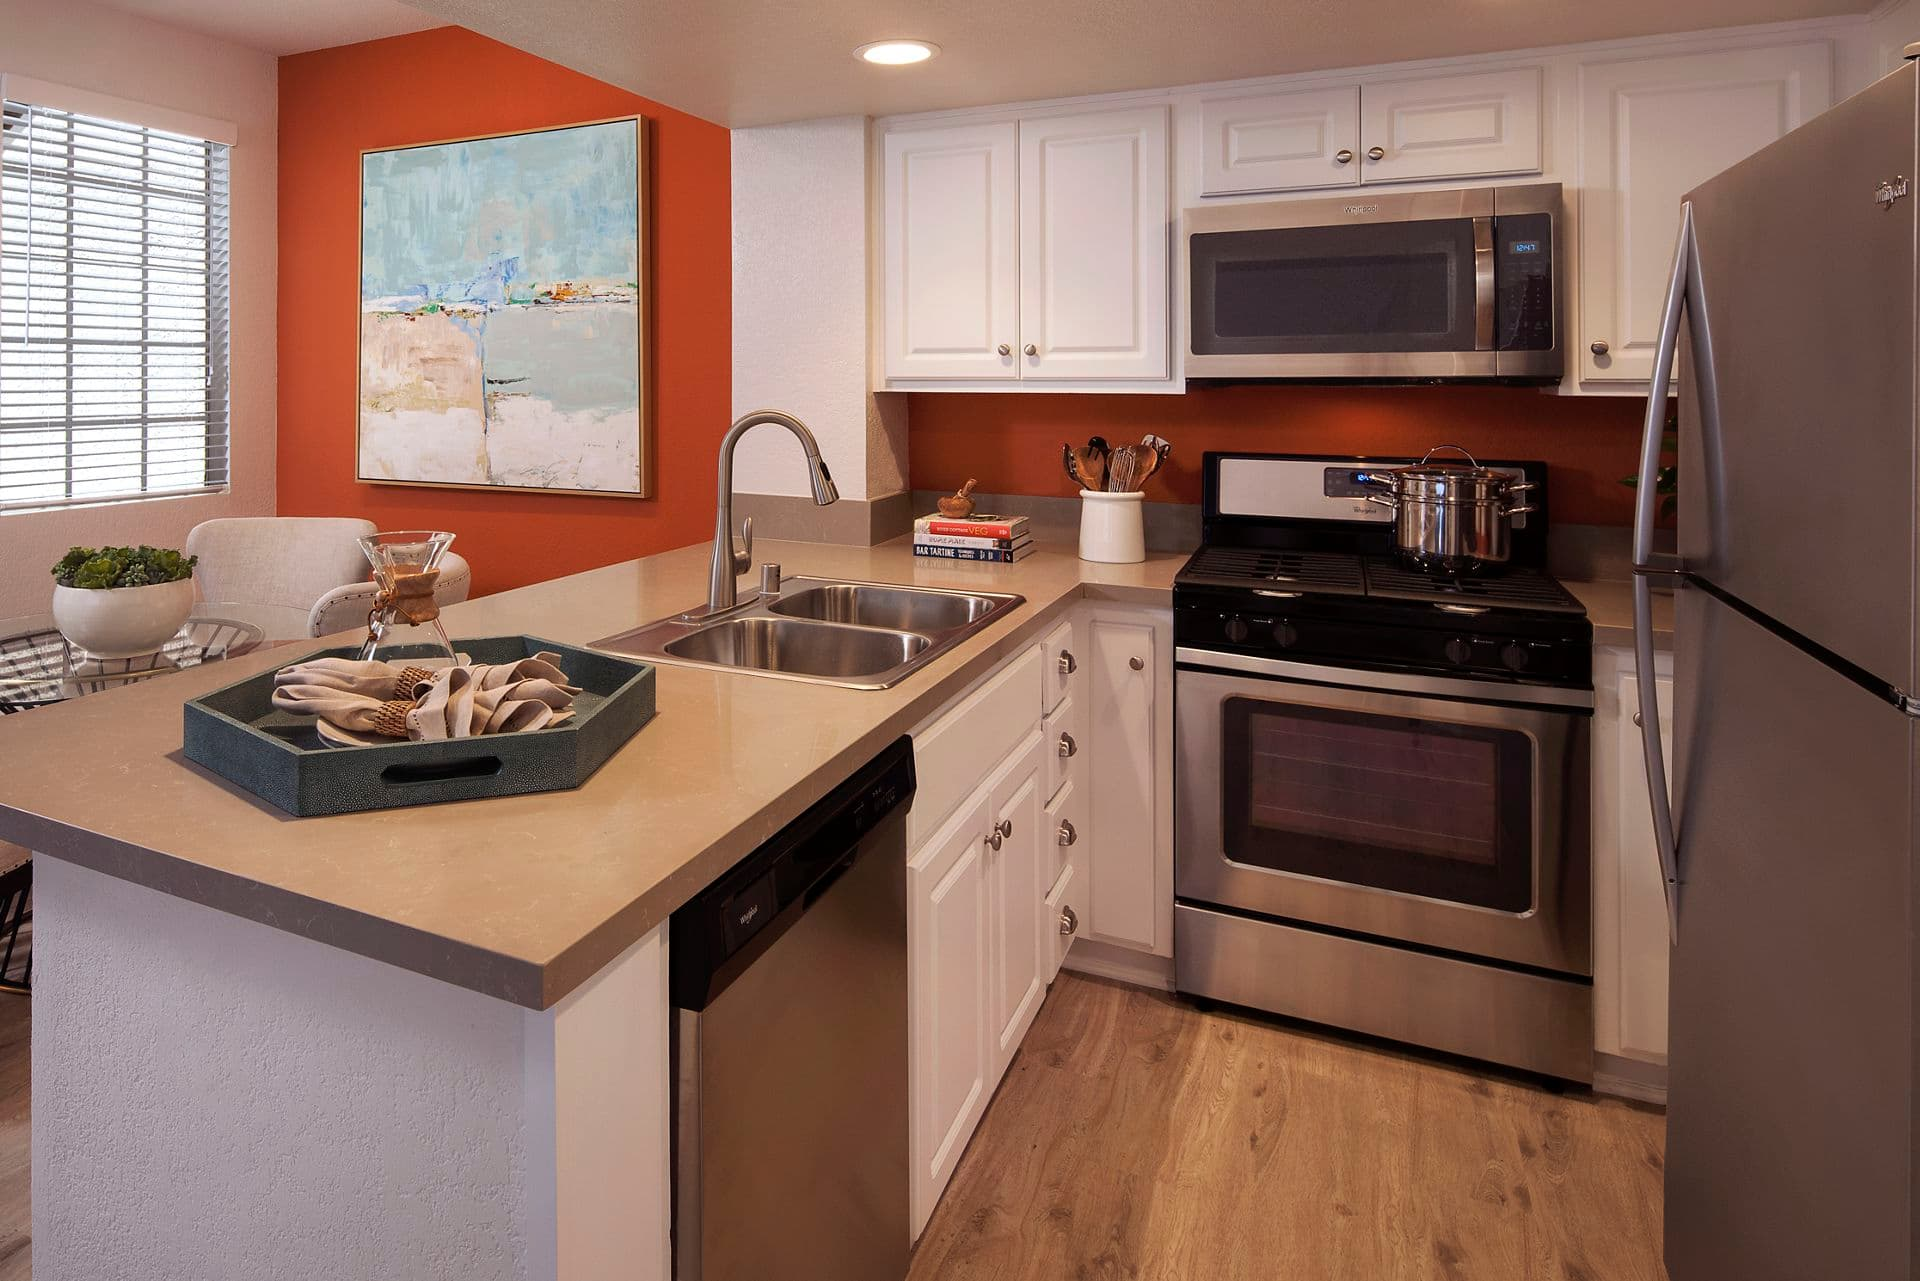 Interior view of kitchen at Aliso Town Center Apartment Homes in Aliso Viejo, CA.